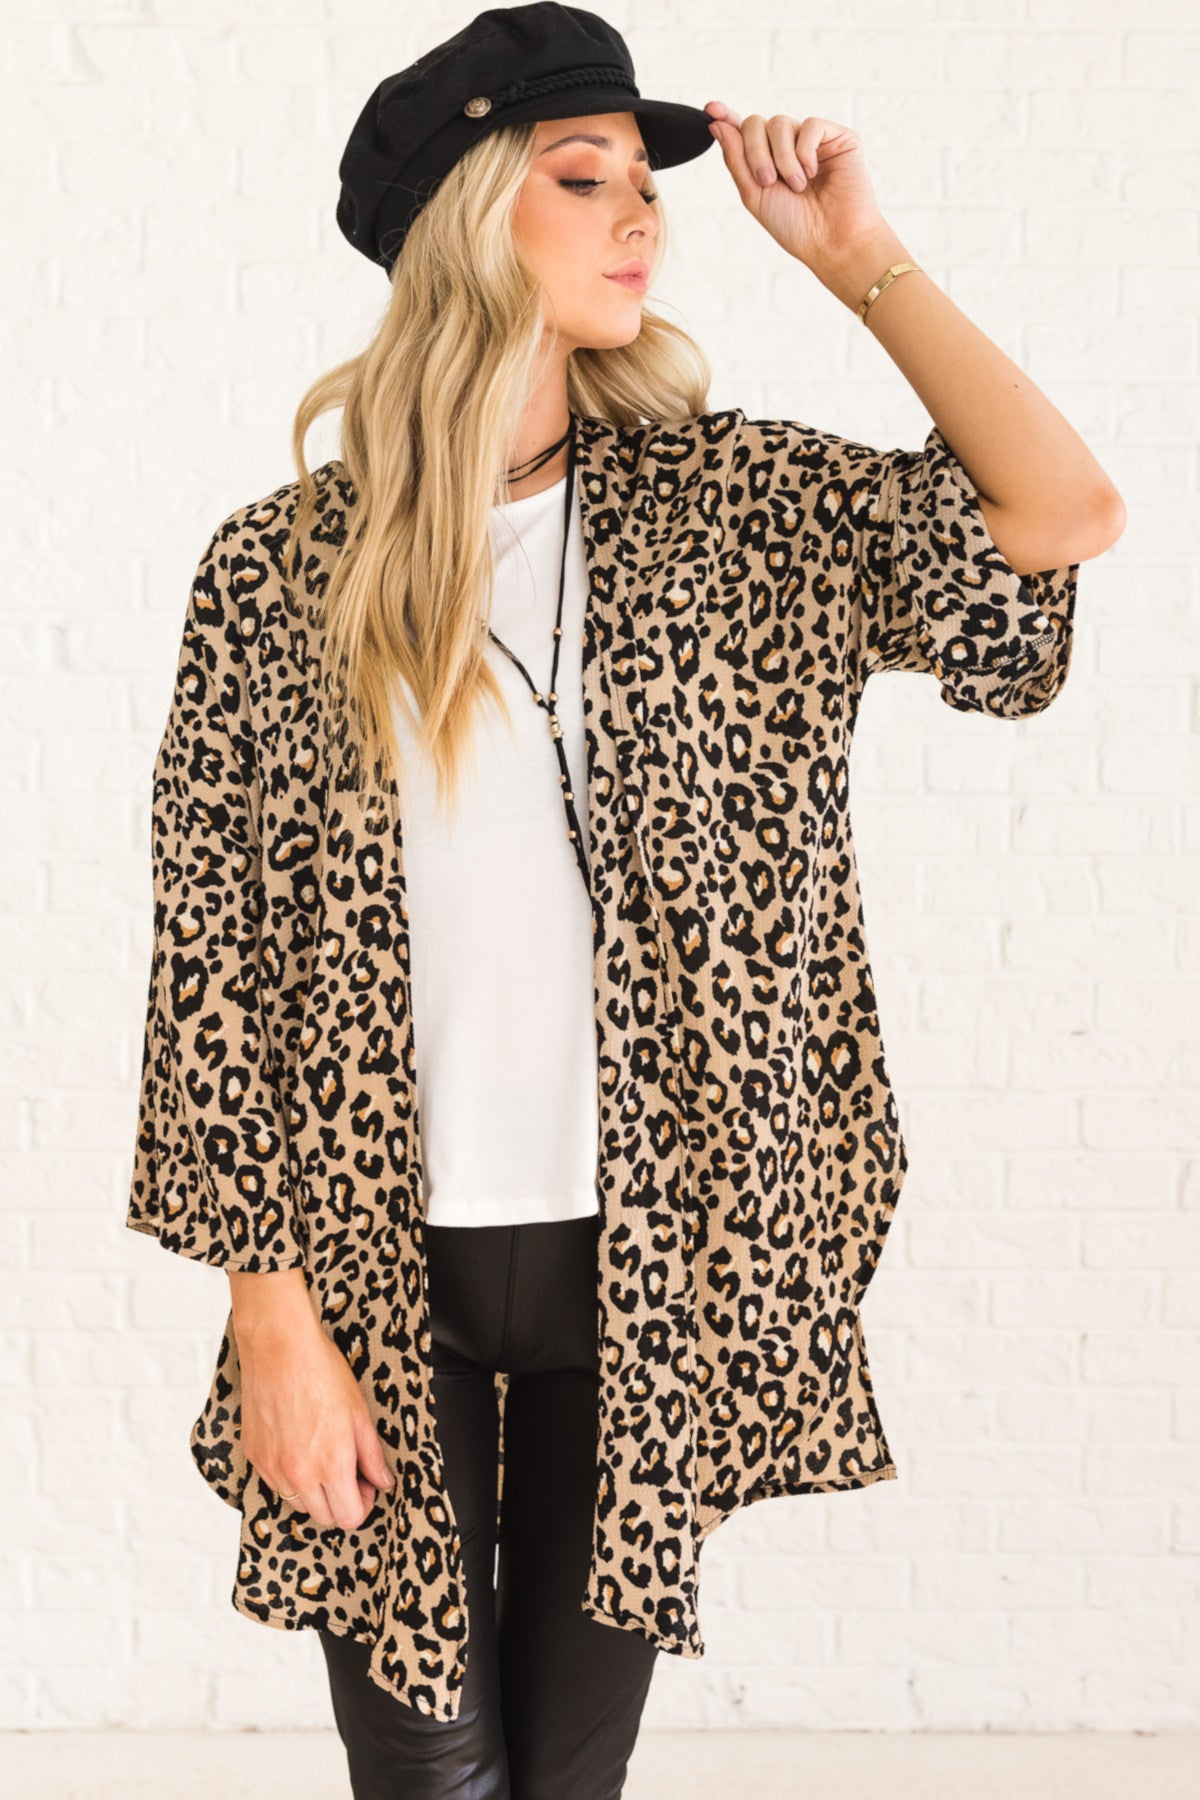 c19c0b1500cf Leopard Print Boutique Kimono with Open Front and Flare Sleeves for Layering